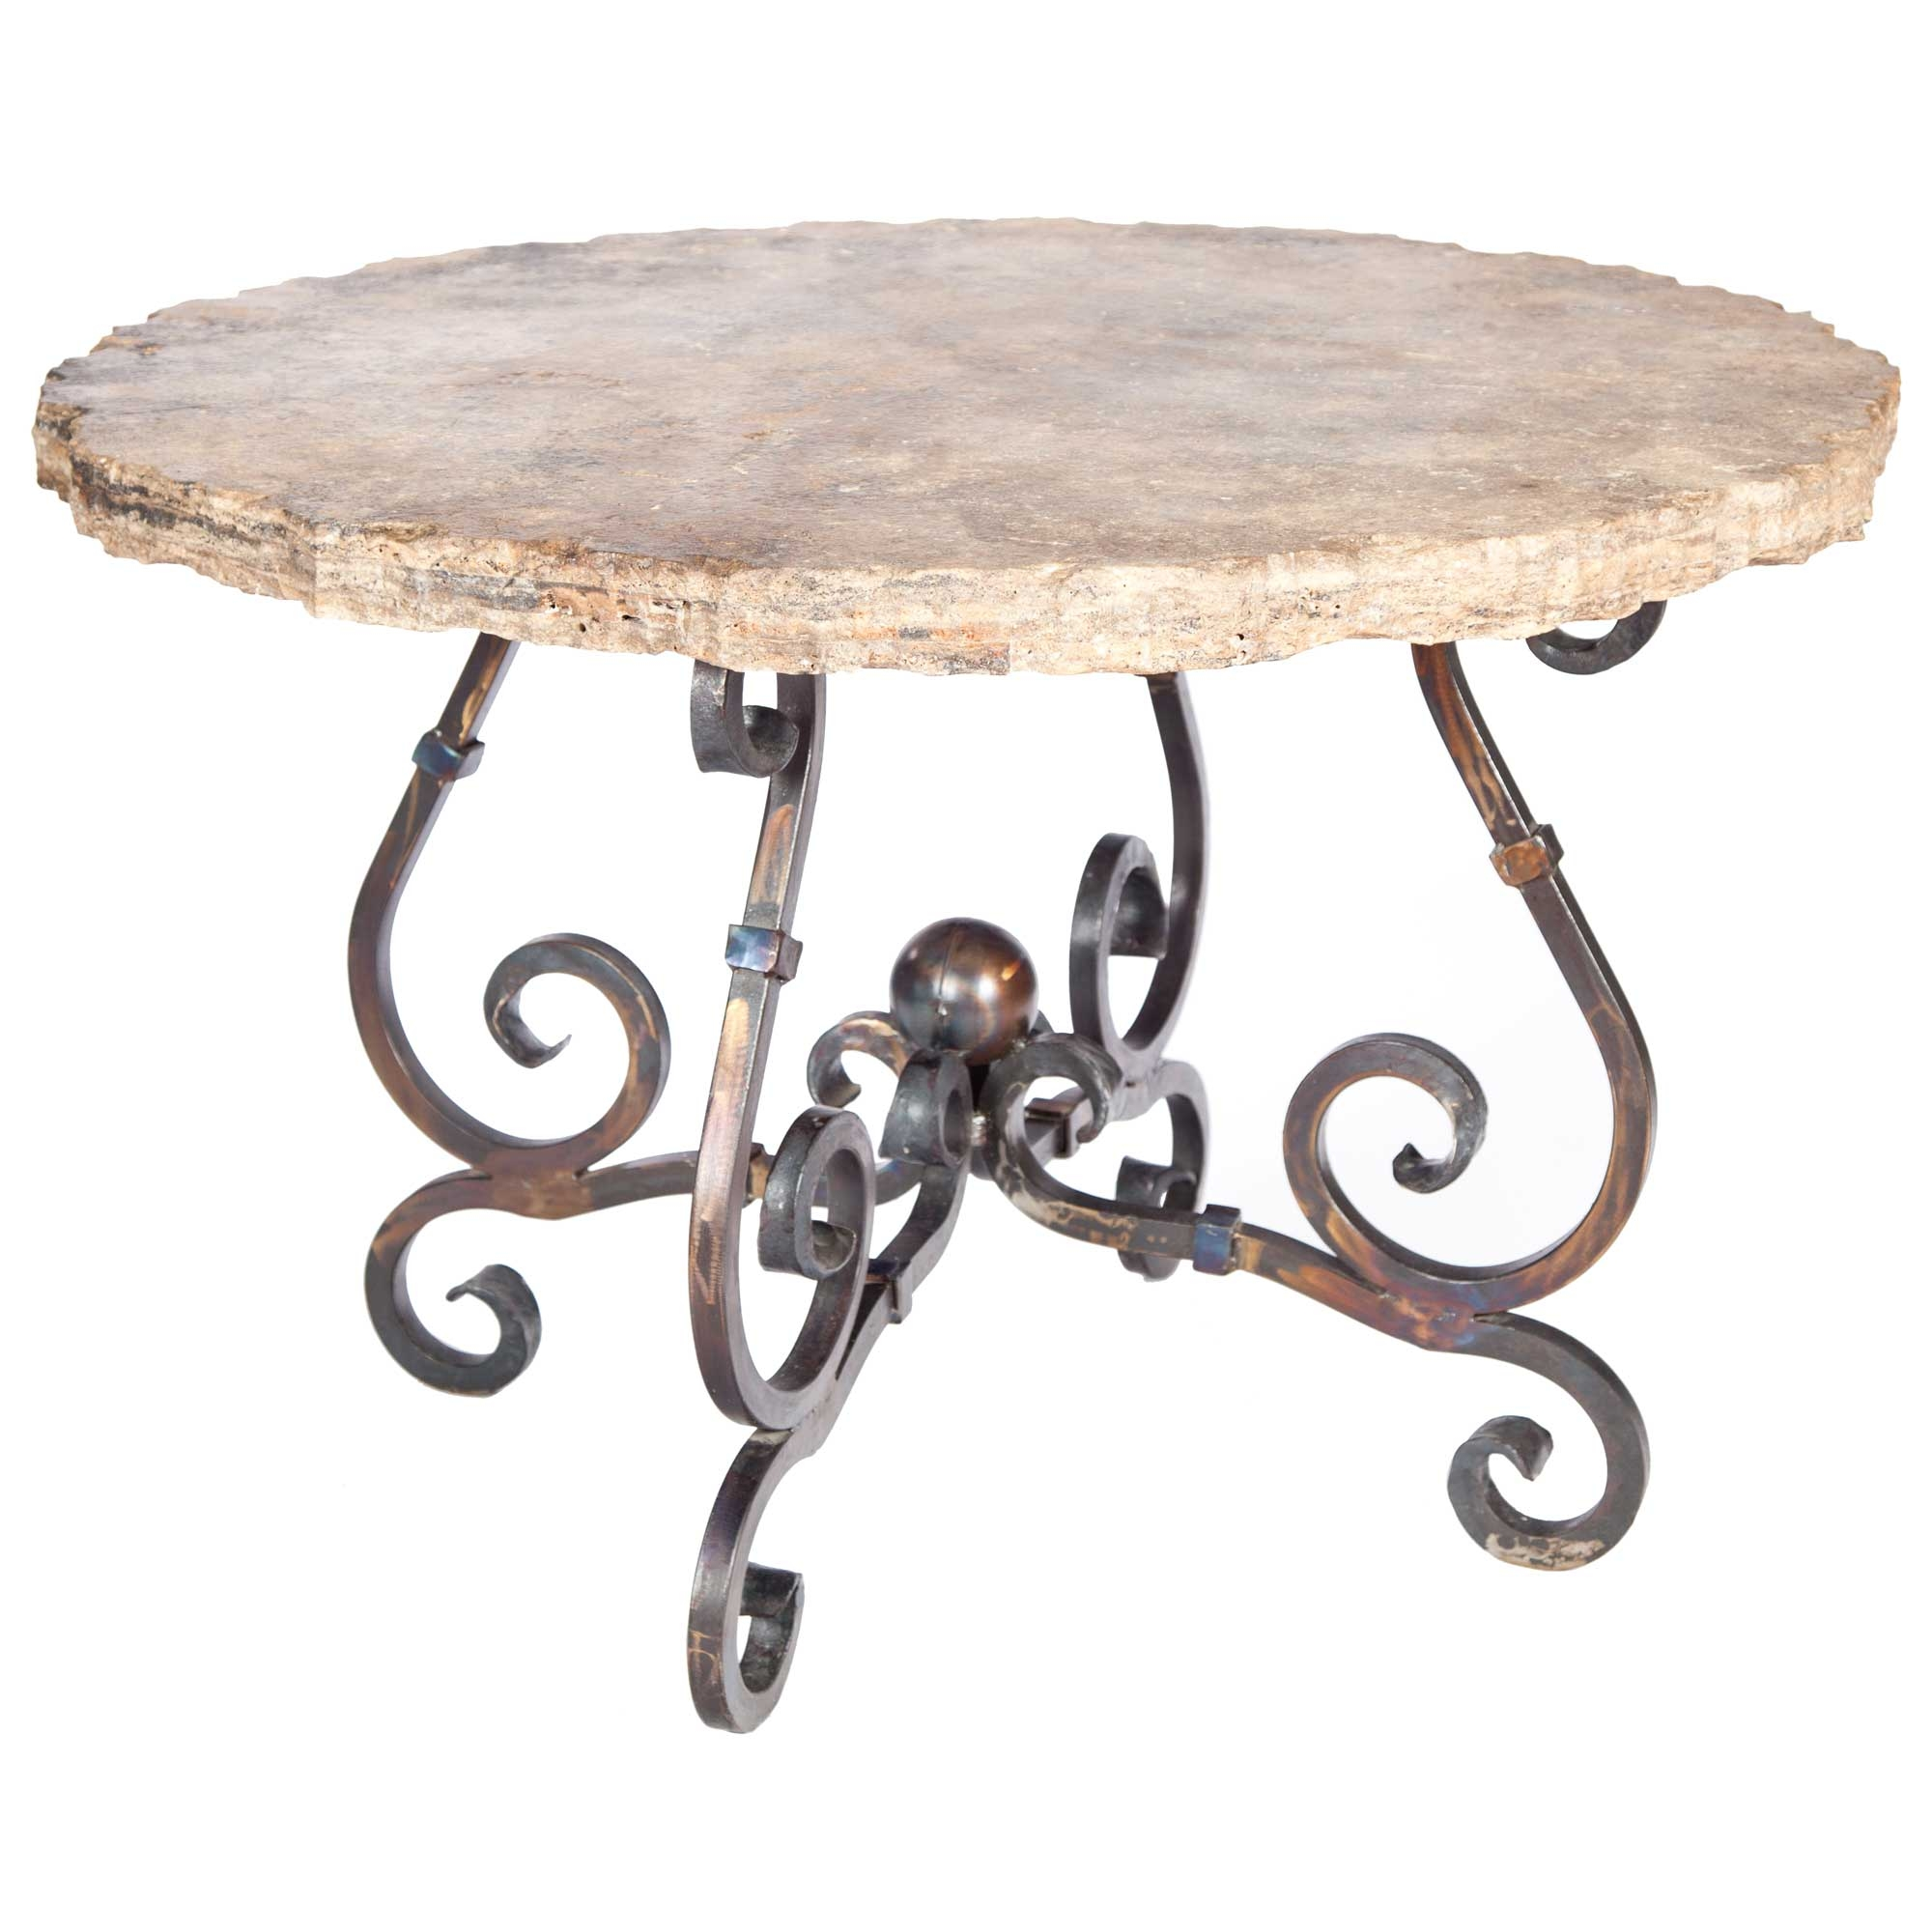 French Iron Dining Table With In Round Marble Top - 30 round marble table top